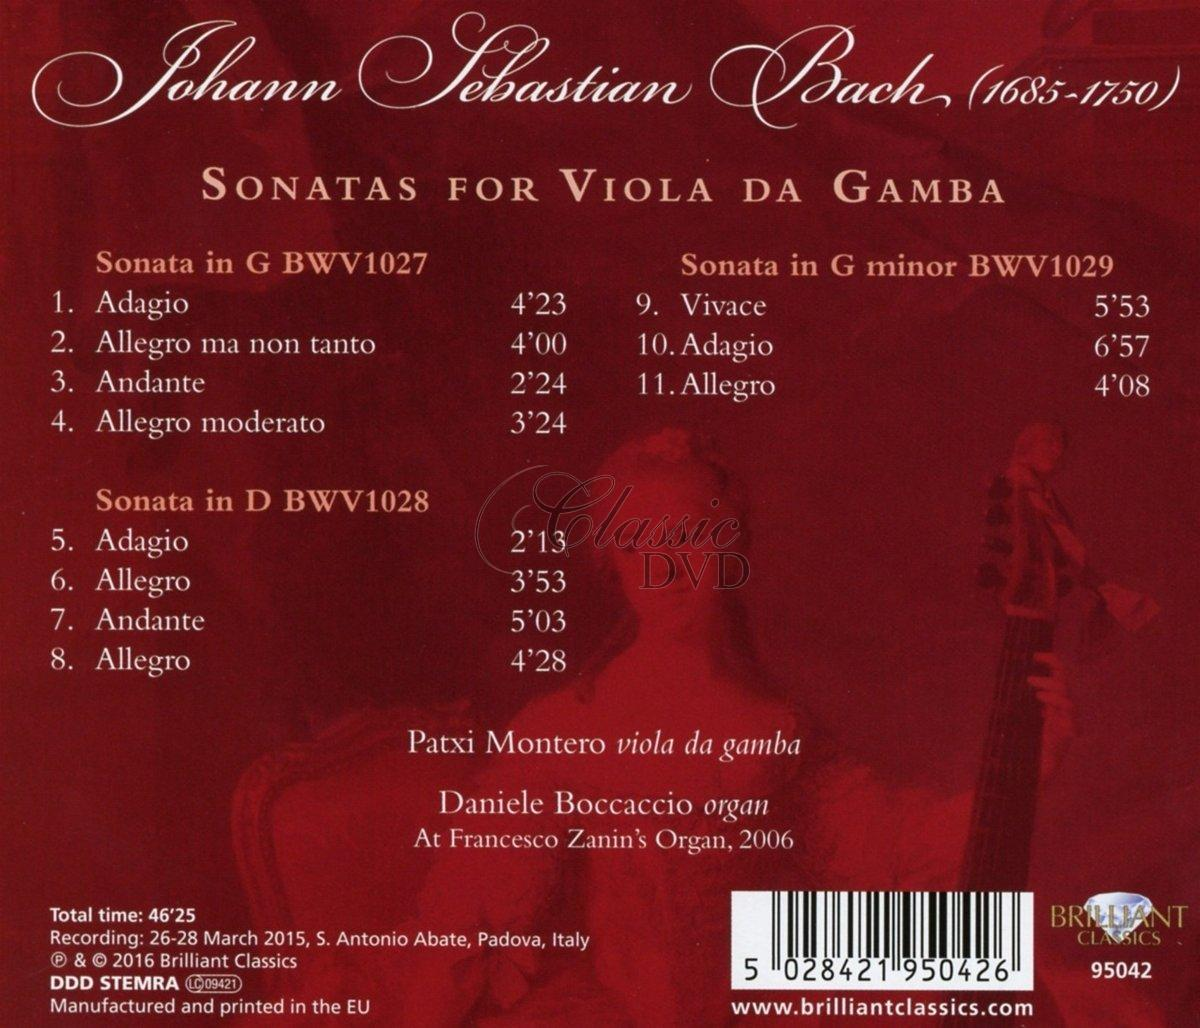 J.S. BACH: Sonatas for Viola da Gamba and Organ (CD)